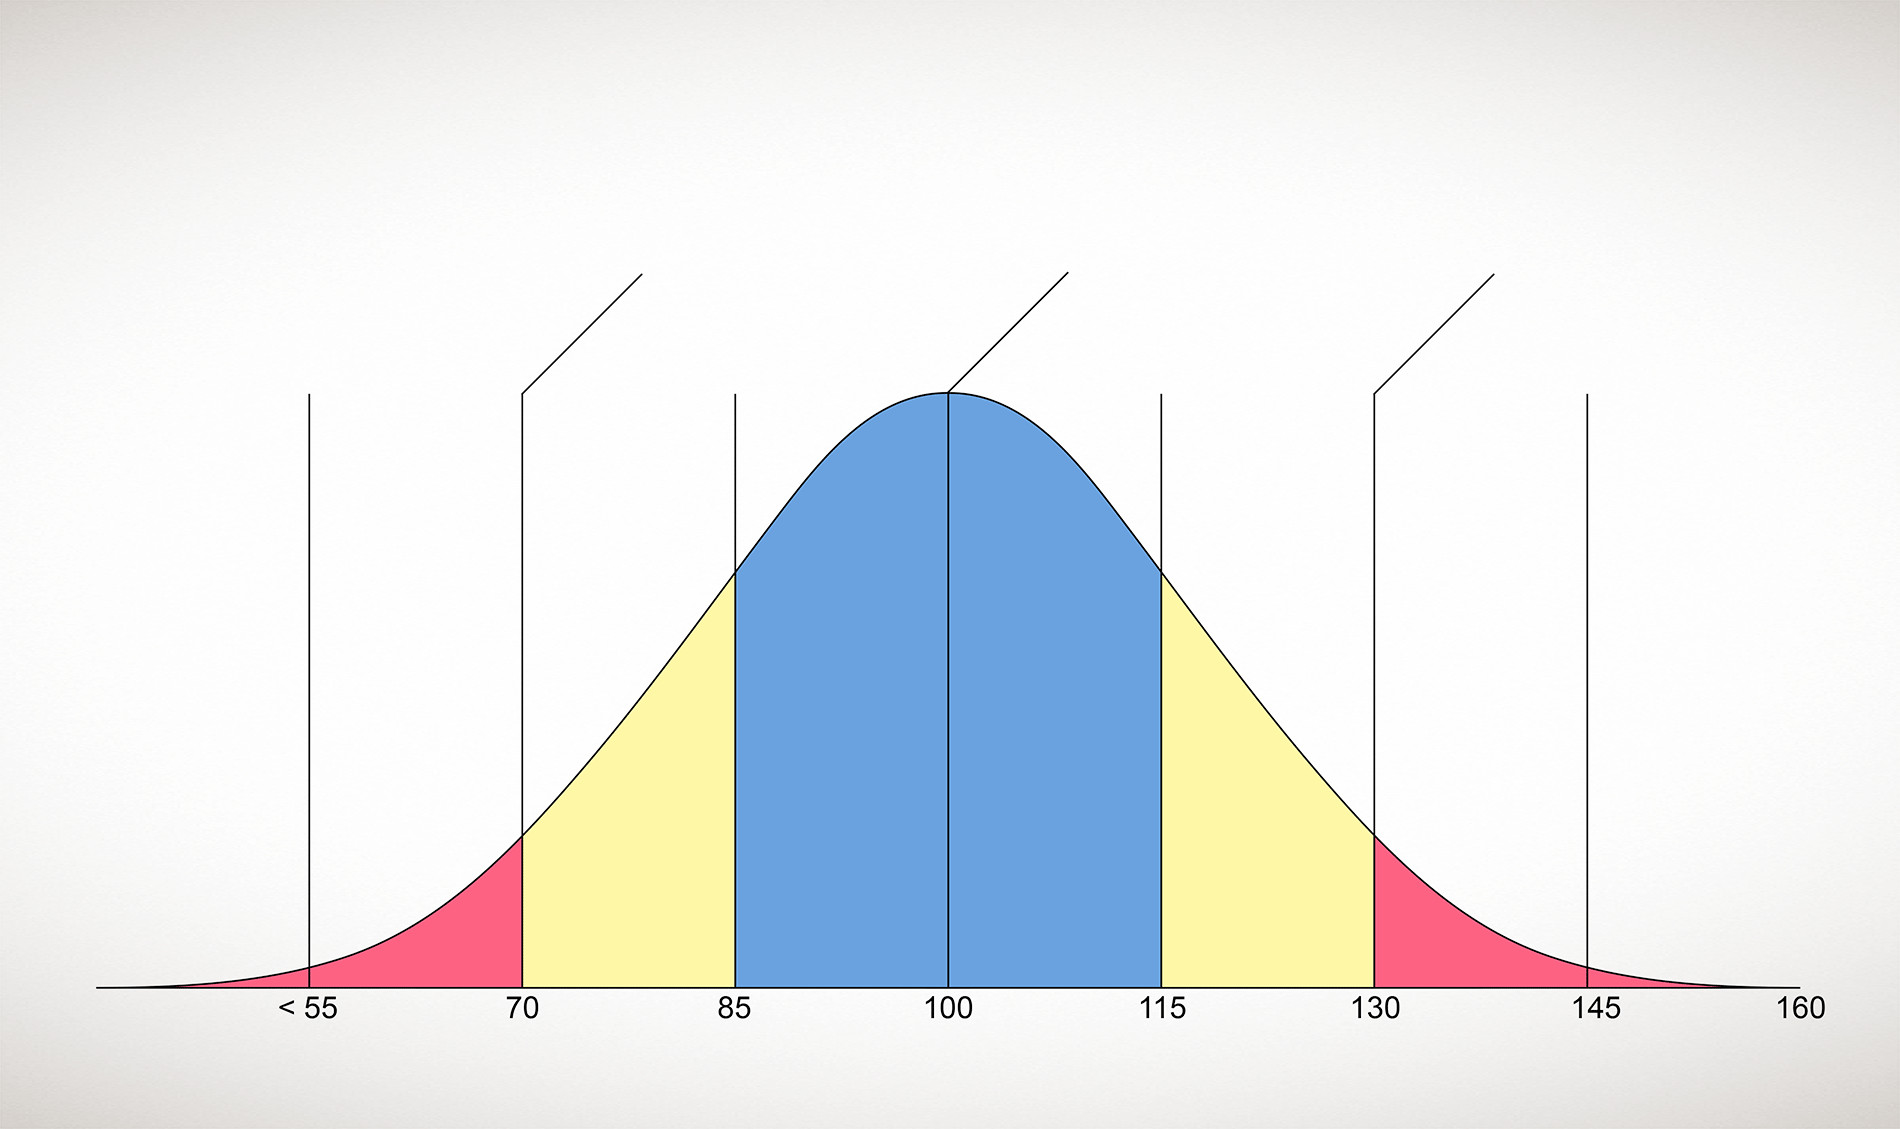 IQ Distribution Graph